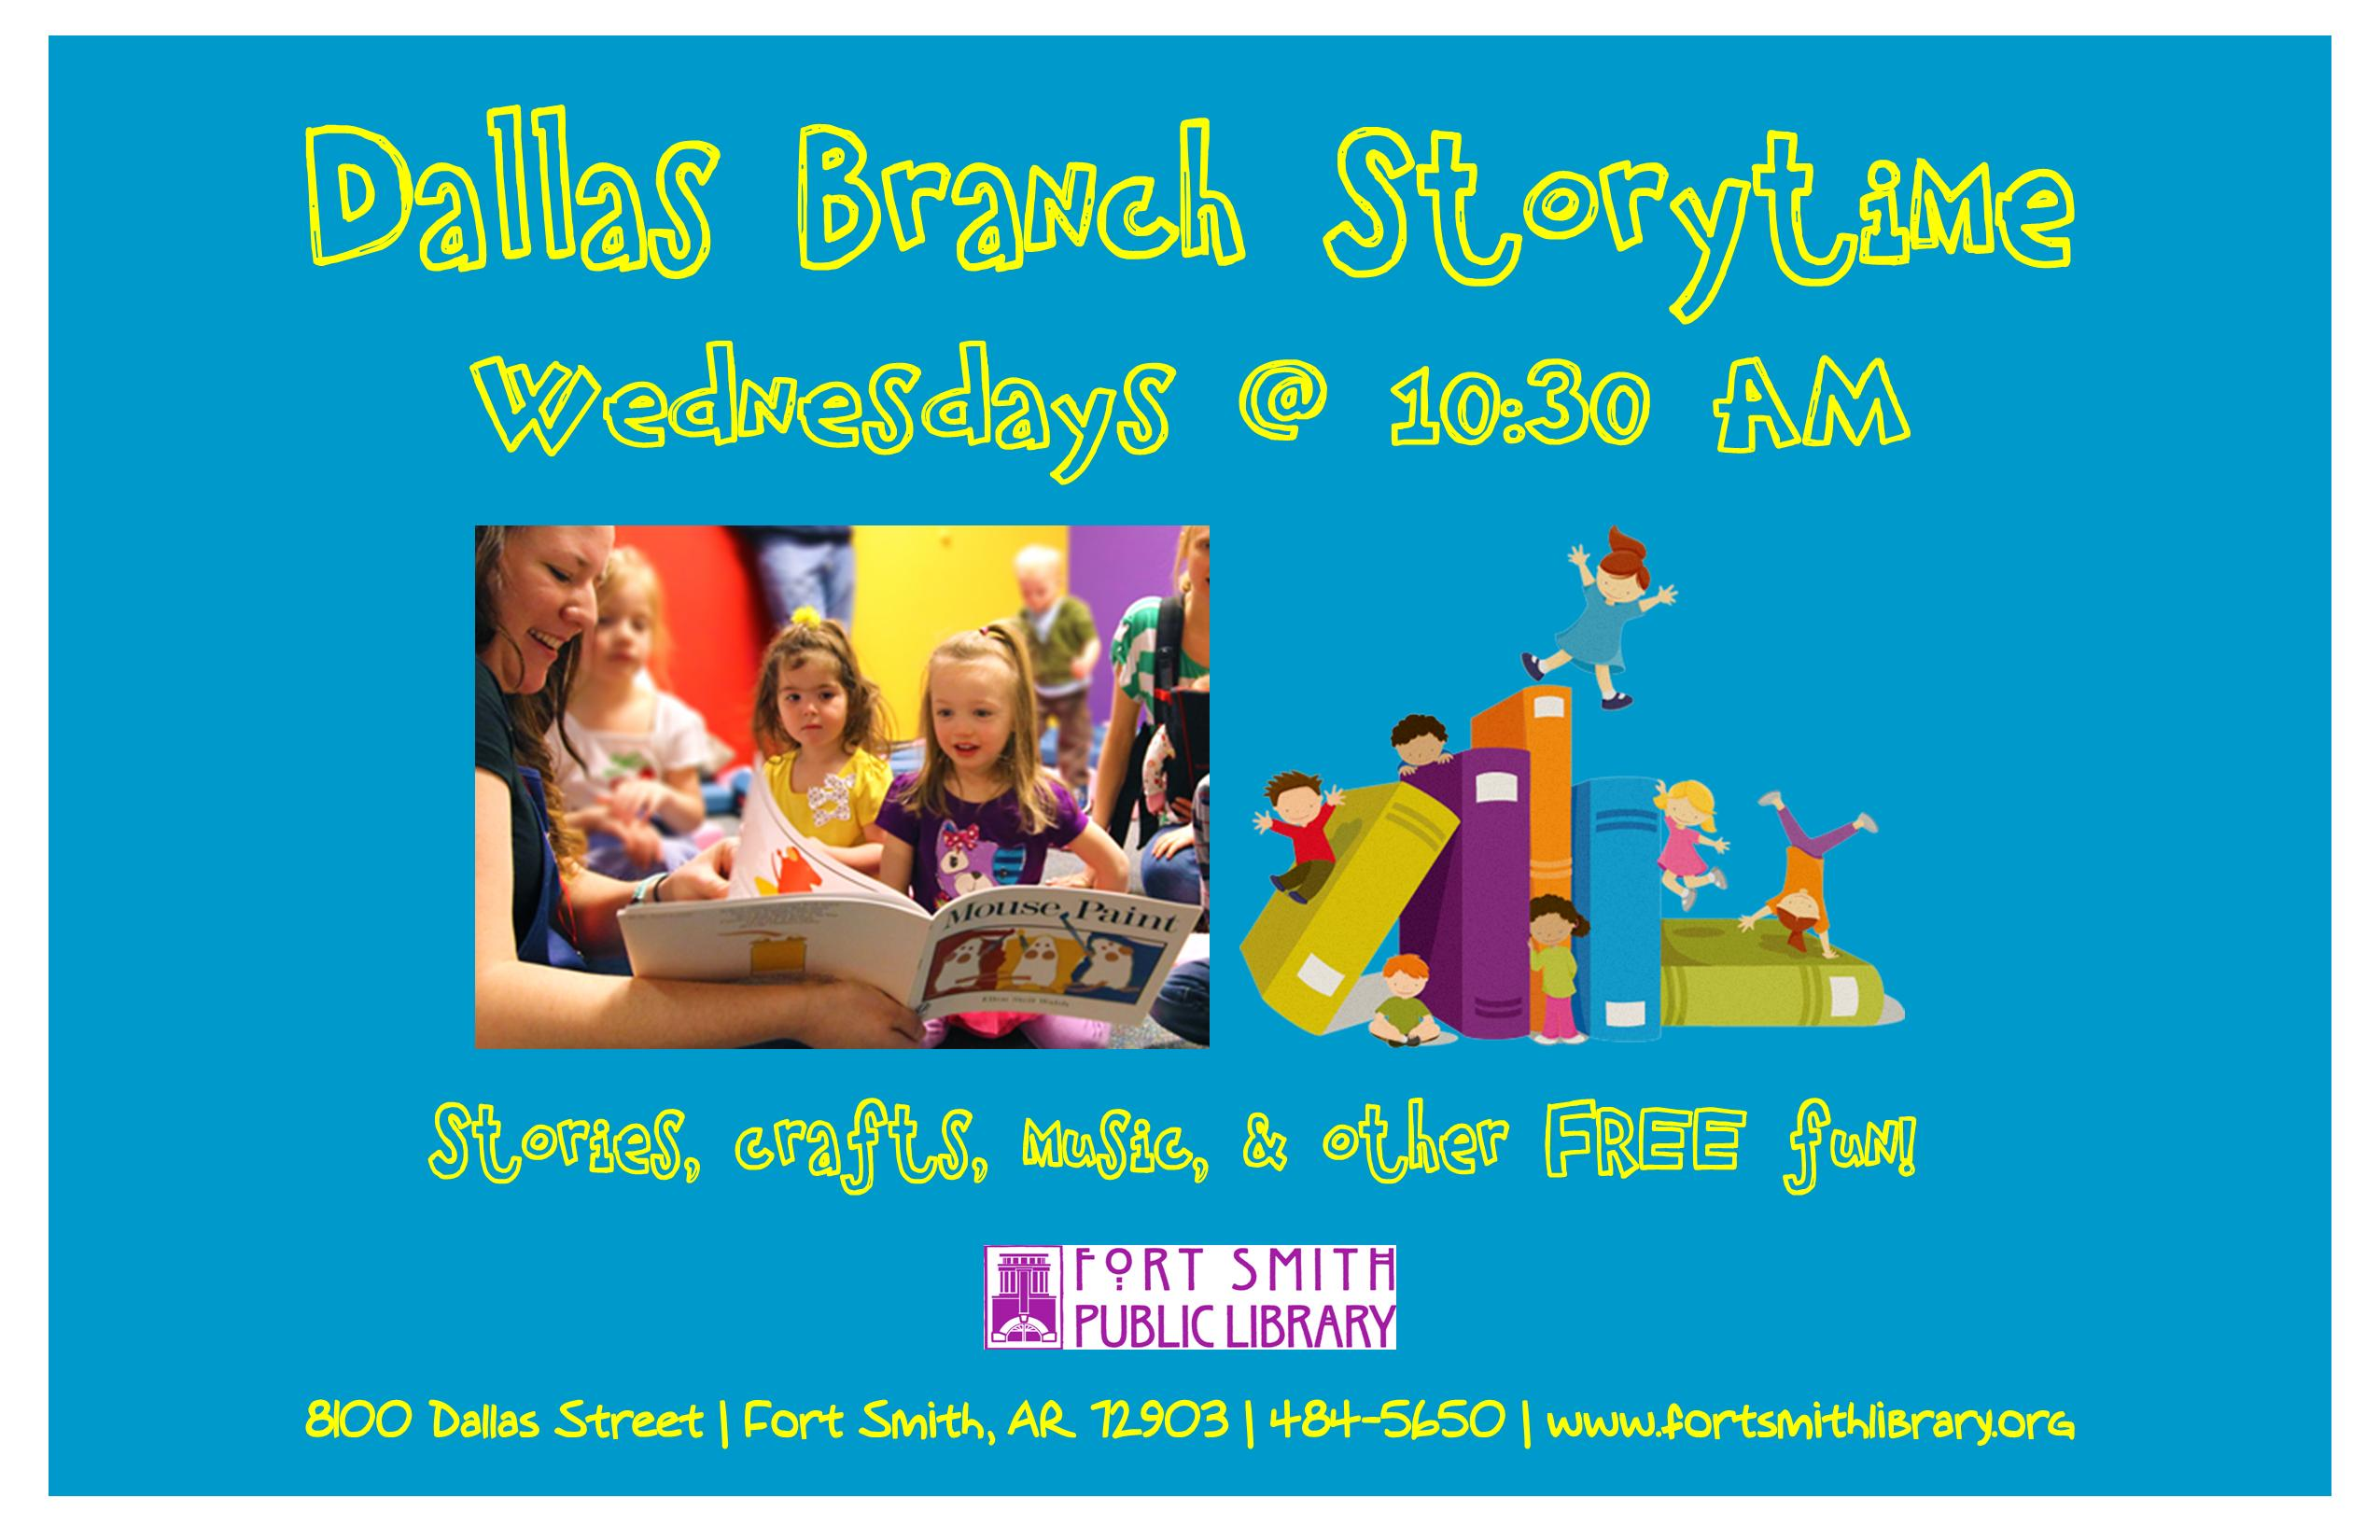 Dallas Branch Storytime poster